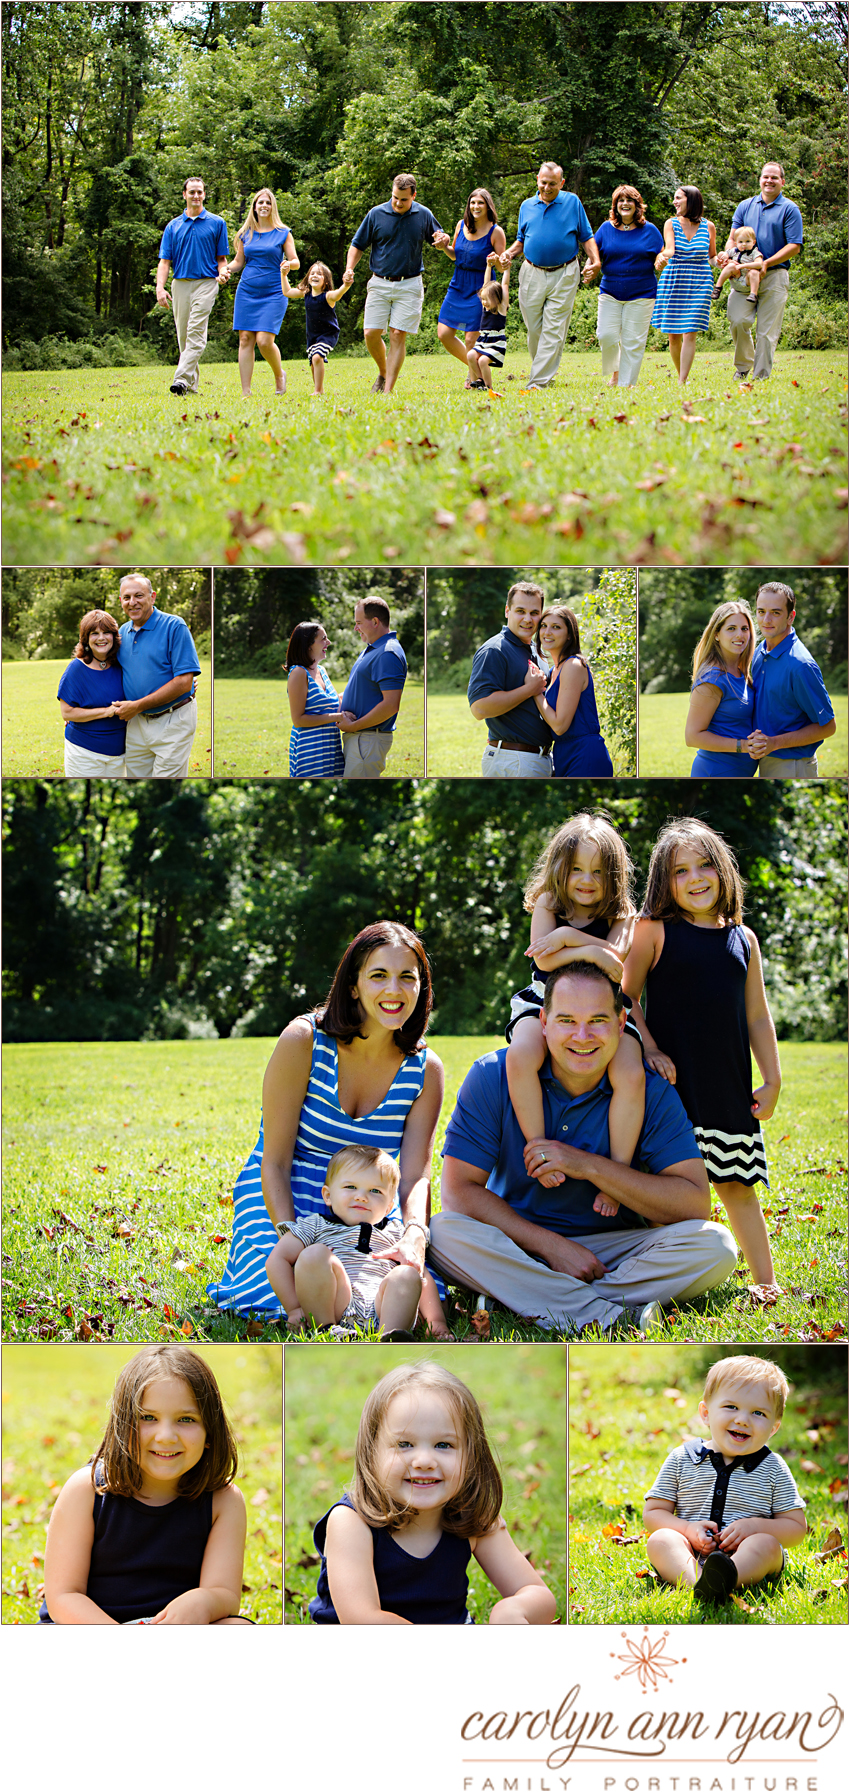 Marvin, North Carolina Classic Extended Family Portrait Session